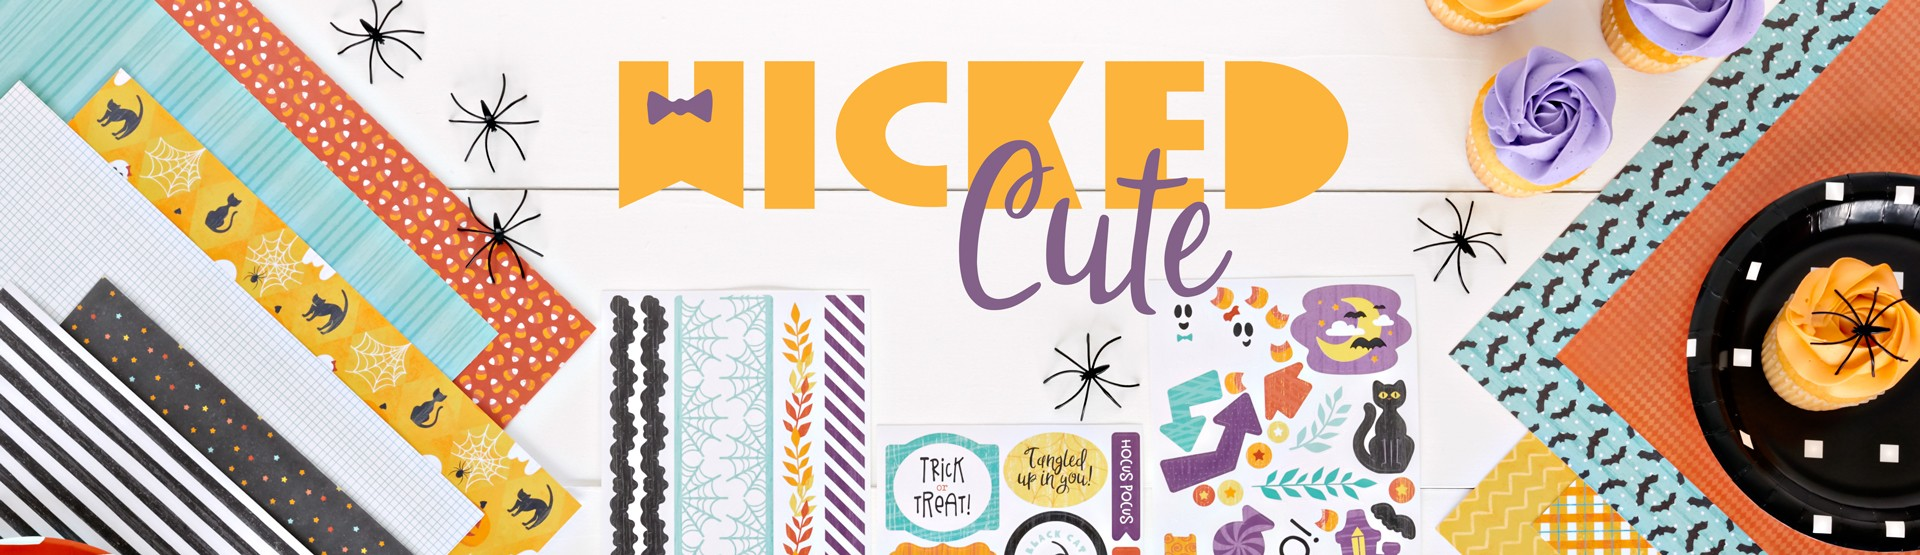 Halloween: Wicked Cute